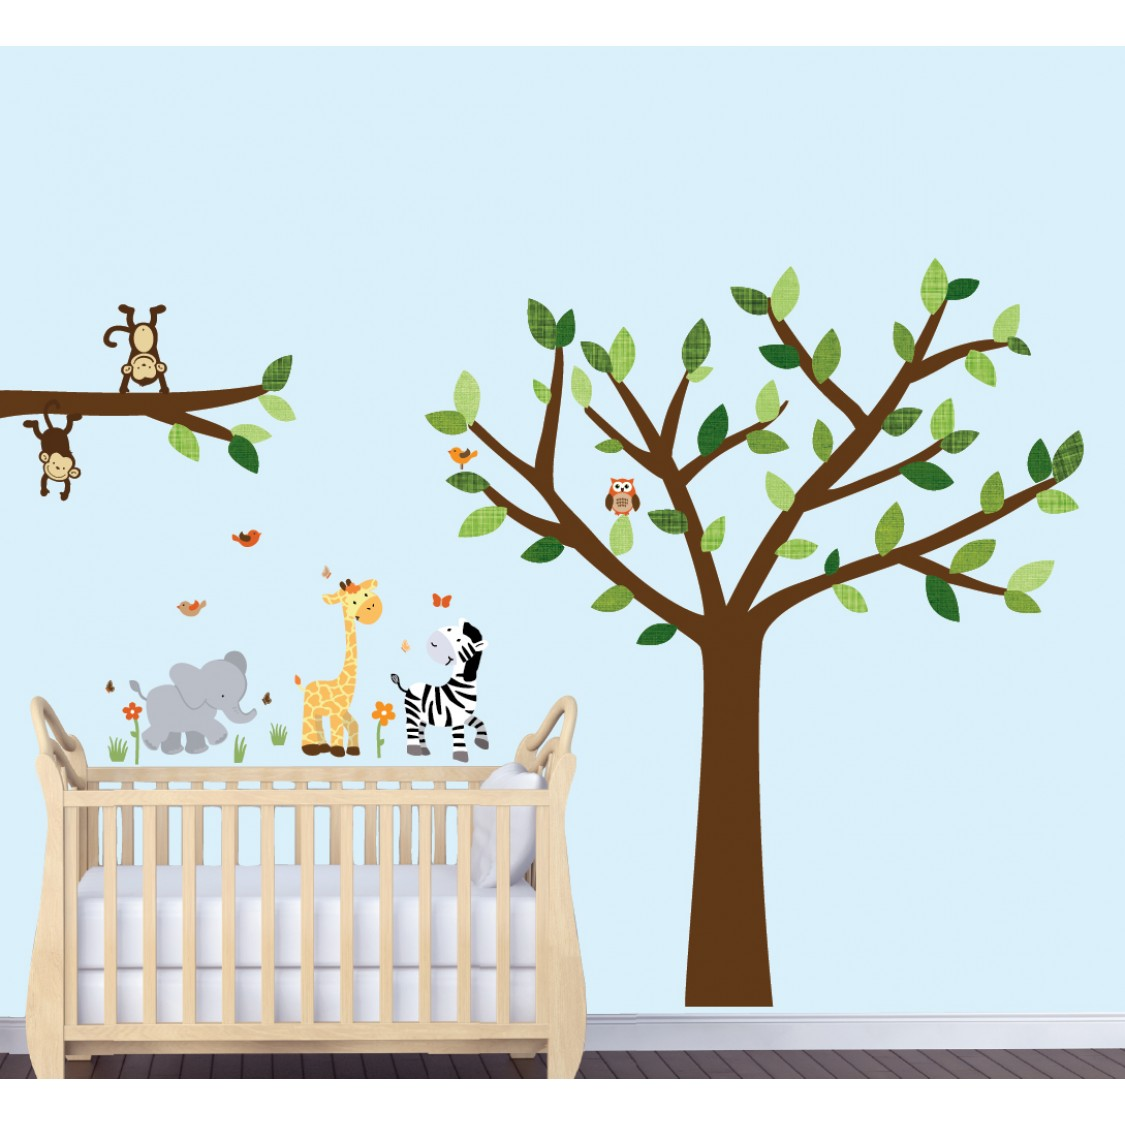 Jungle Wall Art With Elephant Wall Decal For Boys Rooms